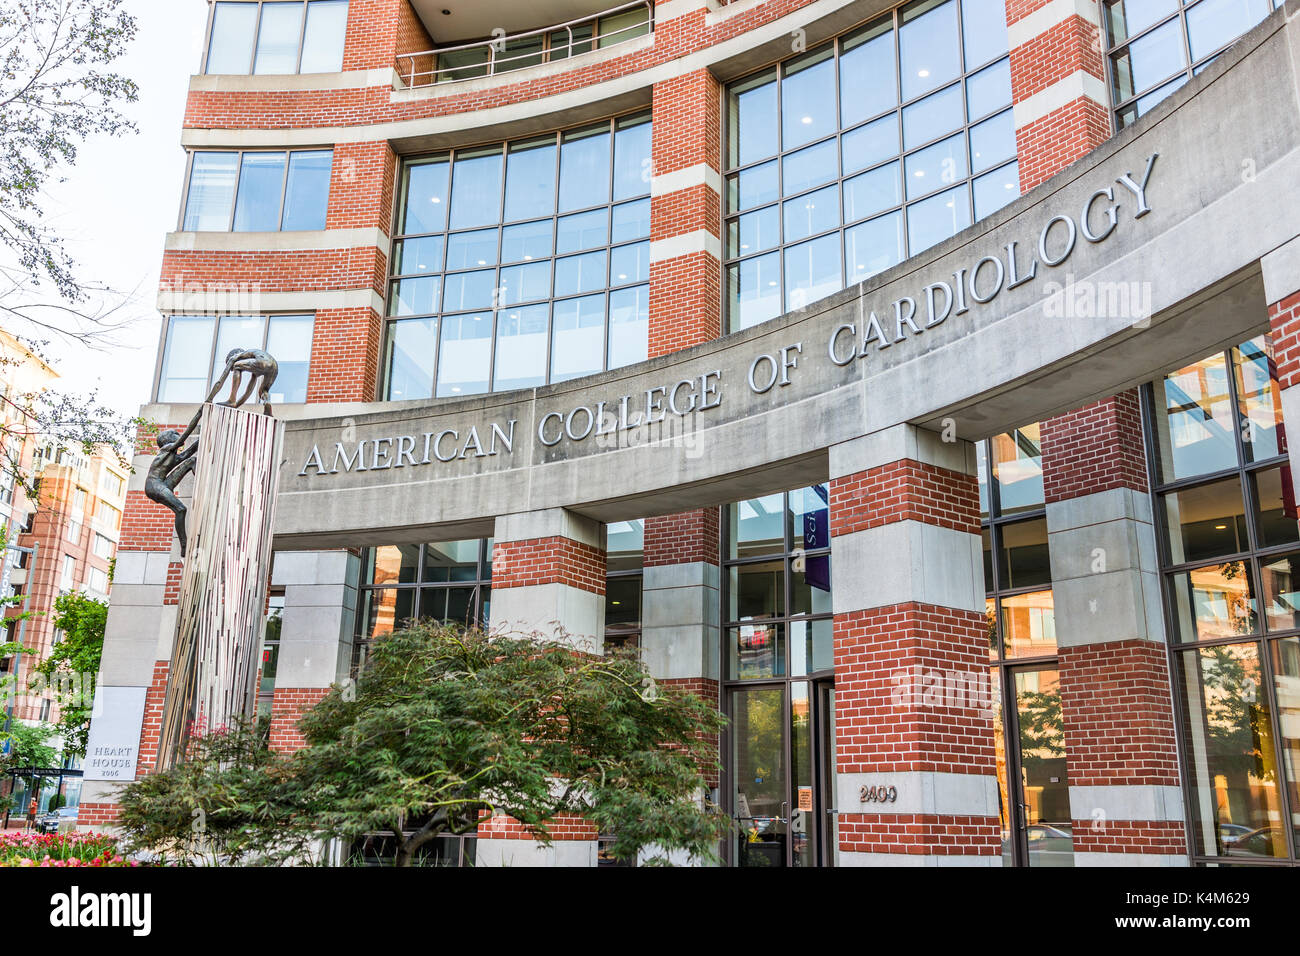 Washington DC, USA - August 4, 2017: American College of Cardiology sign on brick building with entrance - Stock Image